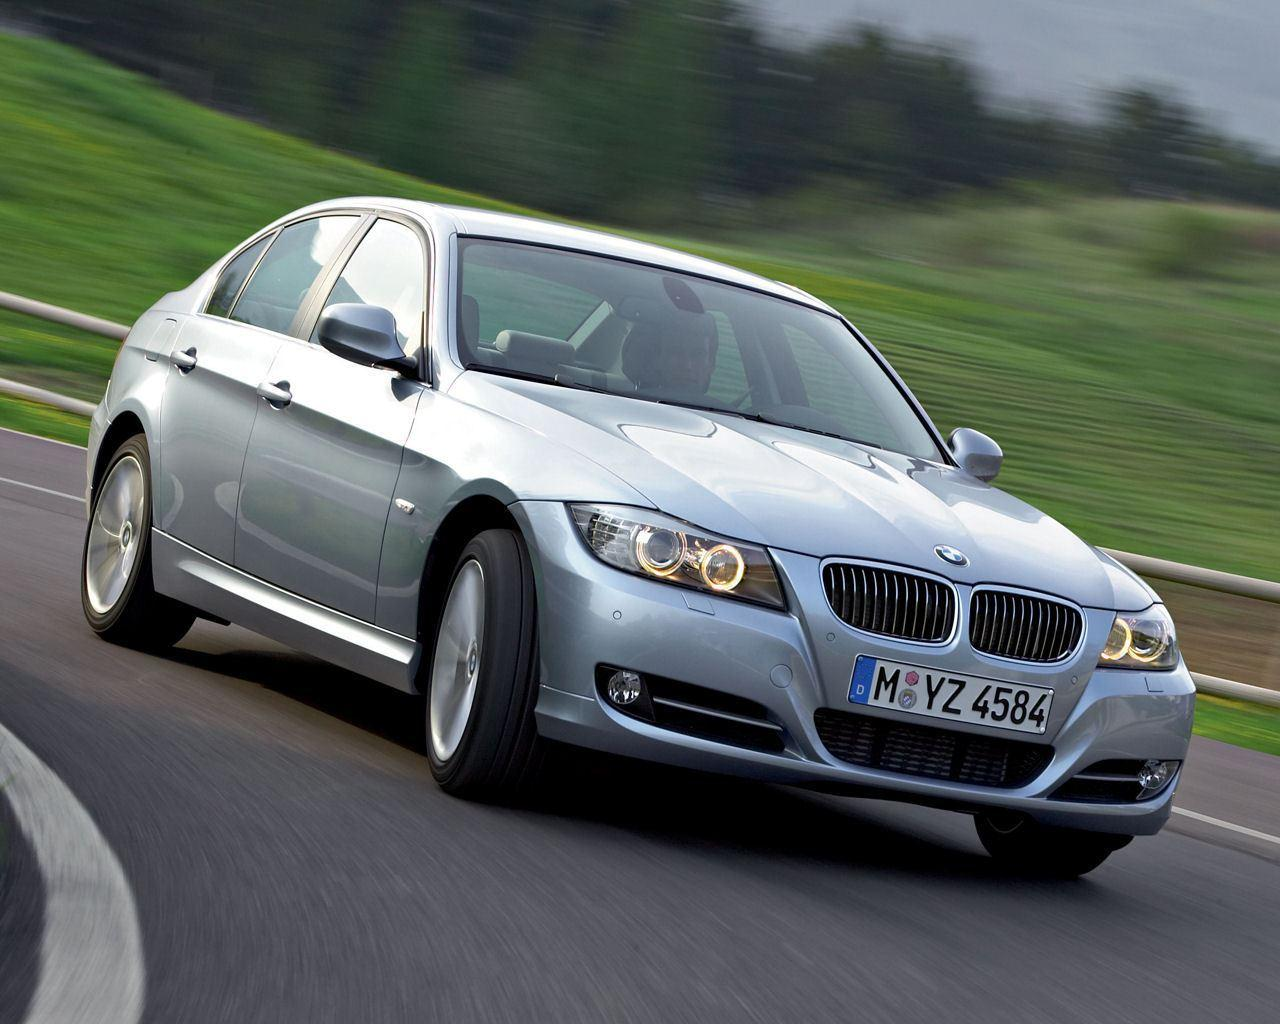 BMW 3 Series 325i Wallpapers - Wallpaper Cave